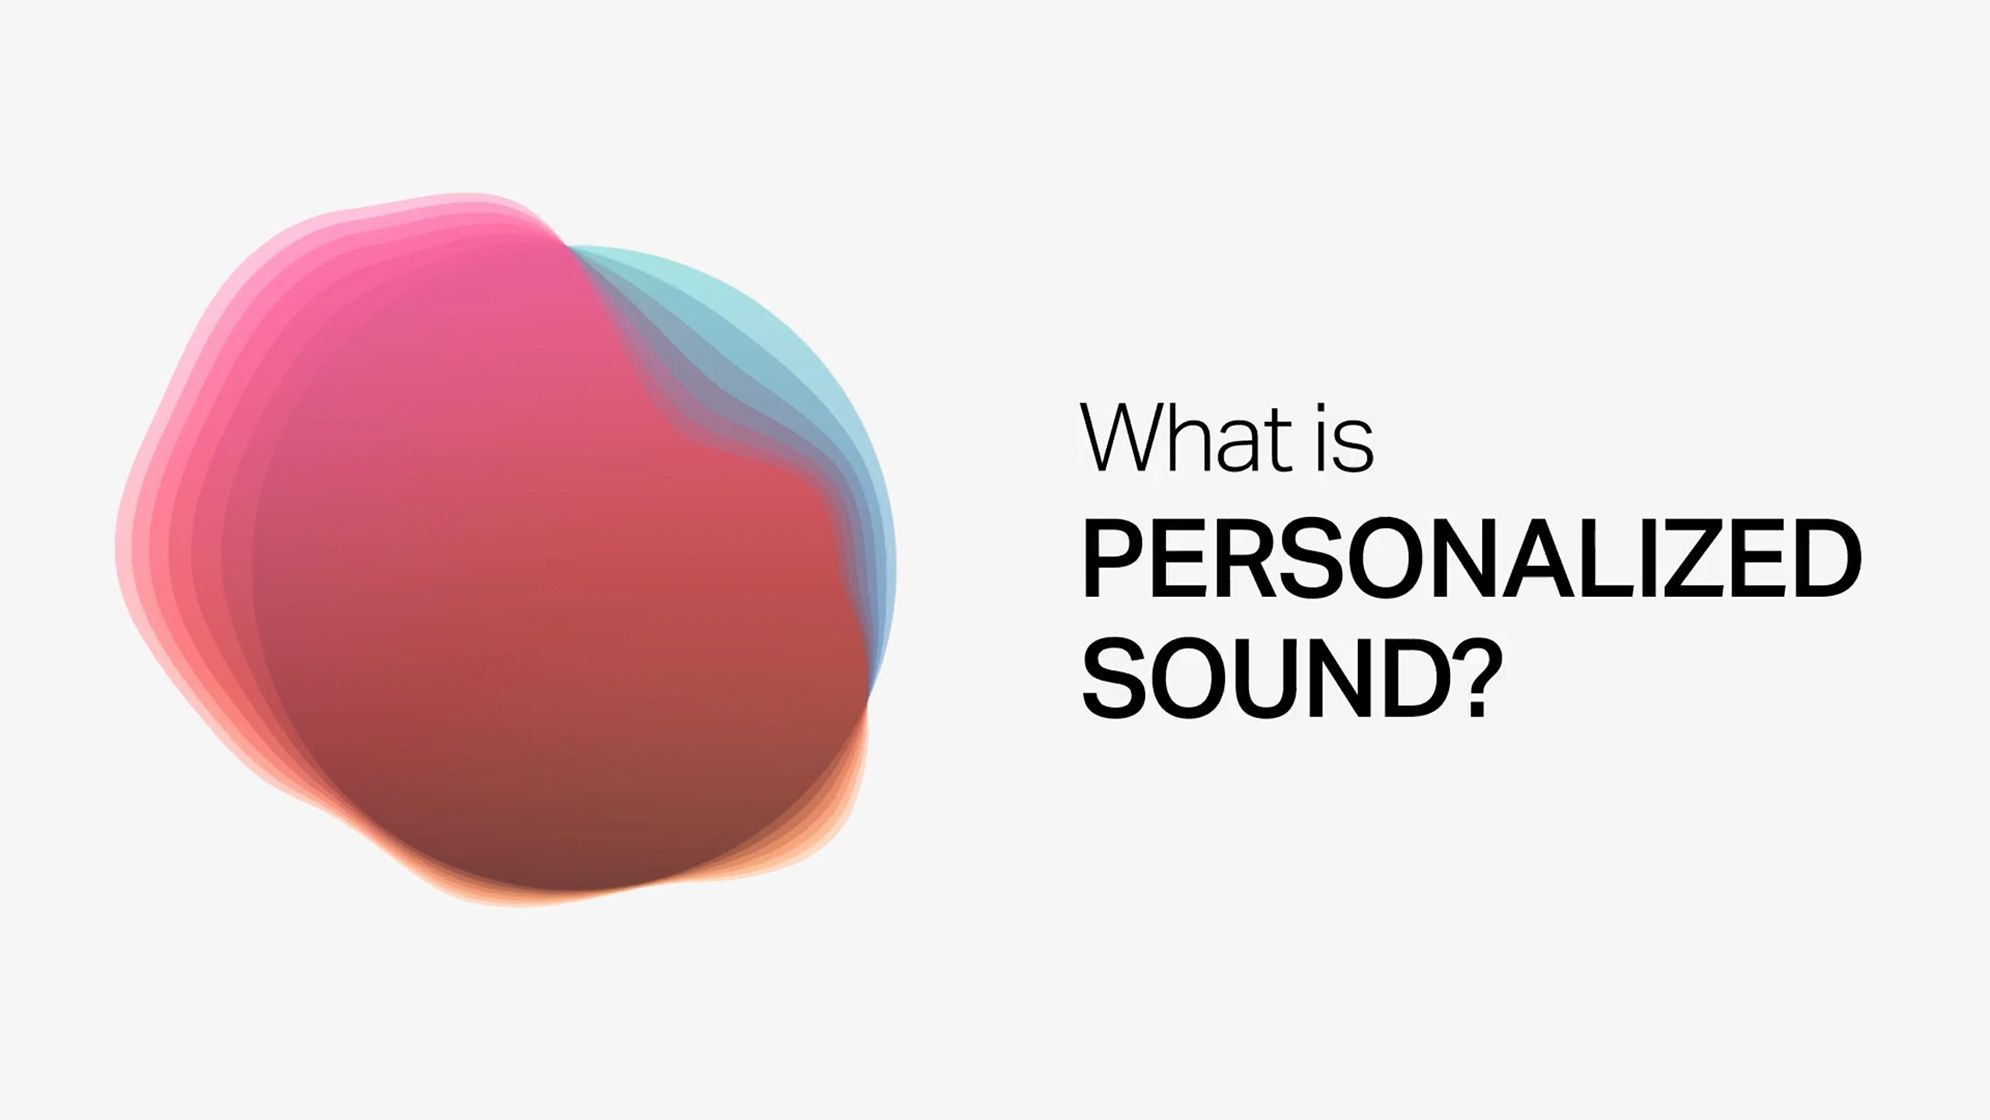 What is Personalized Sound?